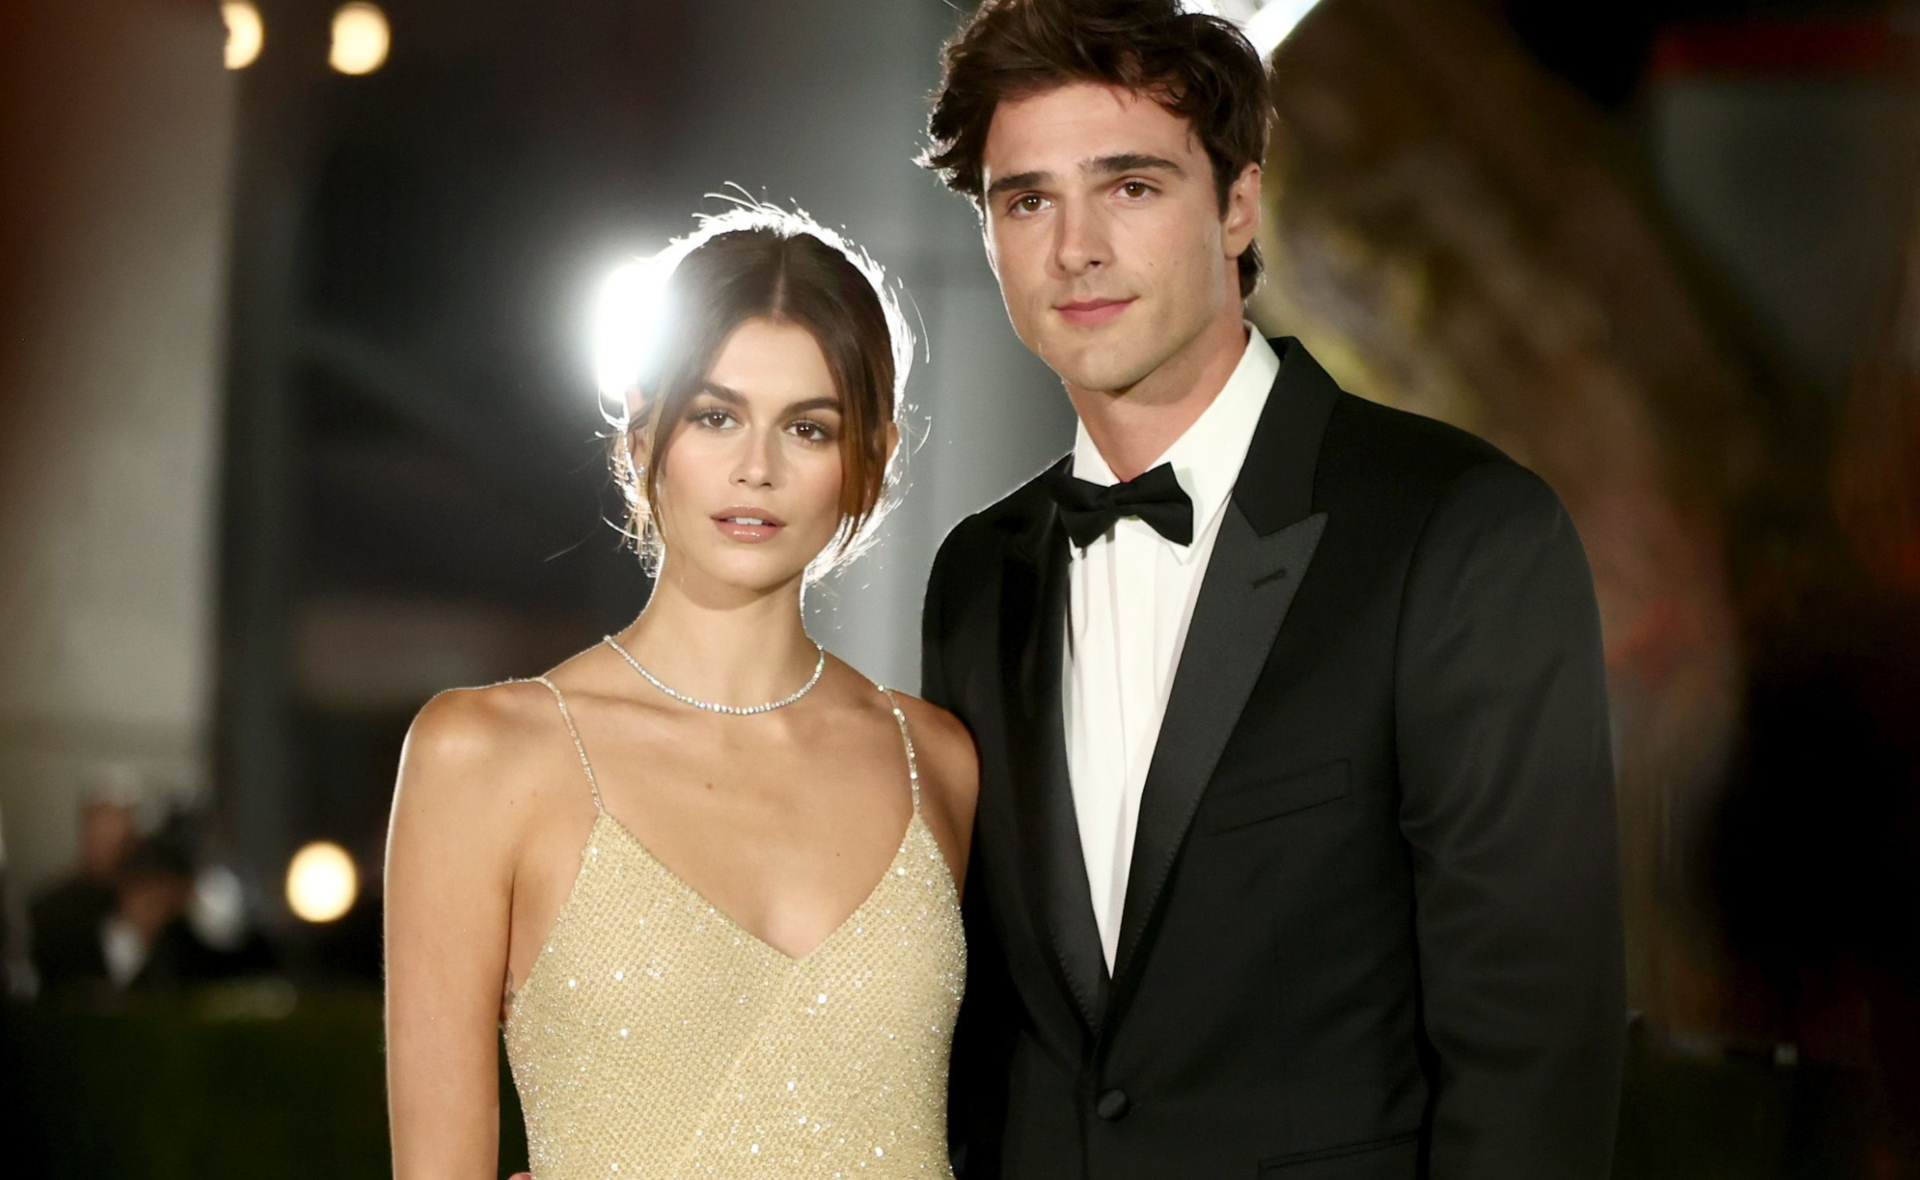 Kaia Gerber & Jacob Elordi Just Made Their Red Carpet Debut With A Heaven-Sent Display